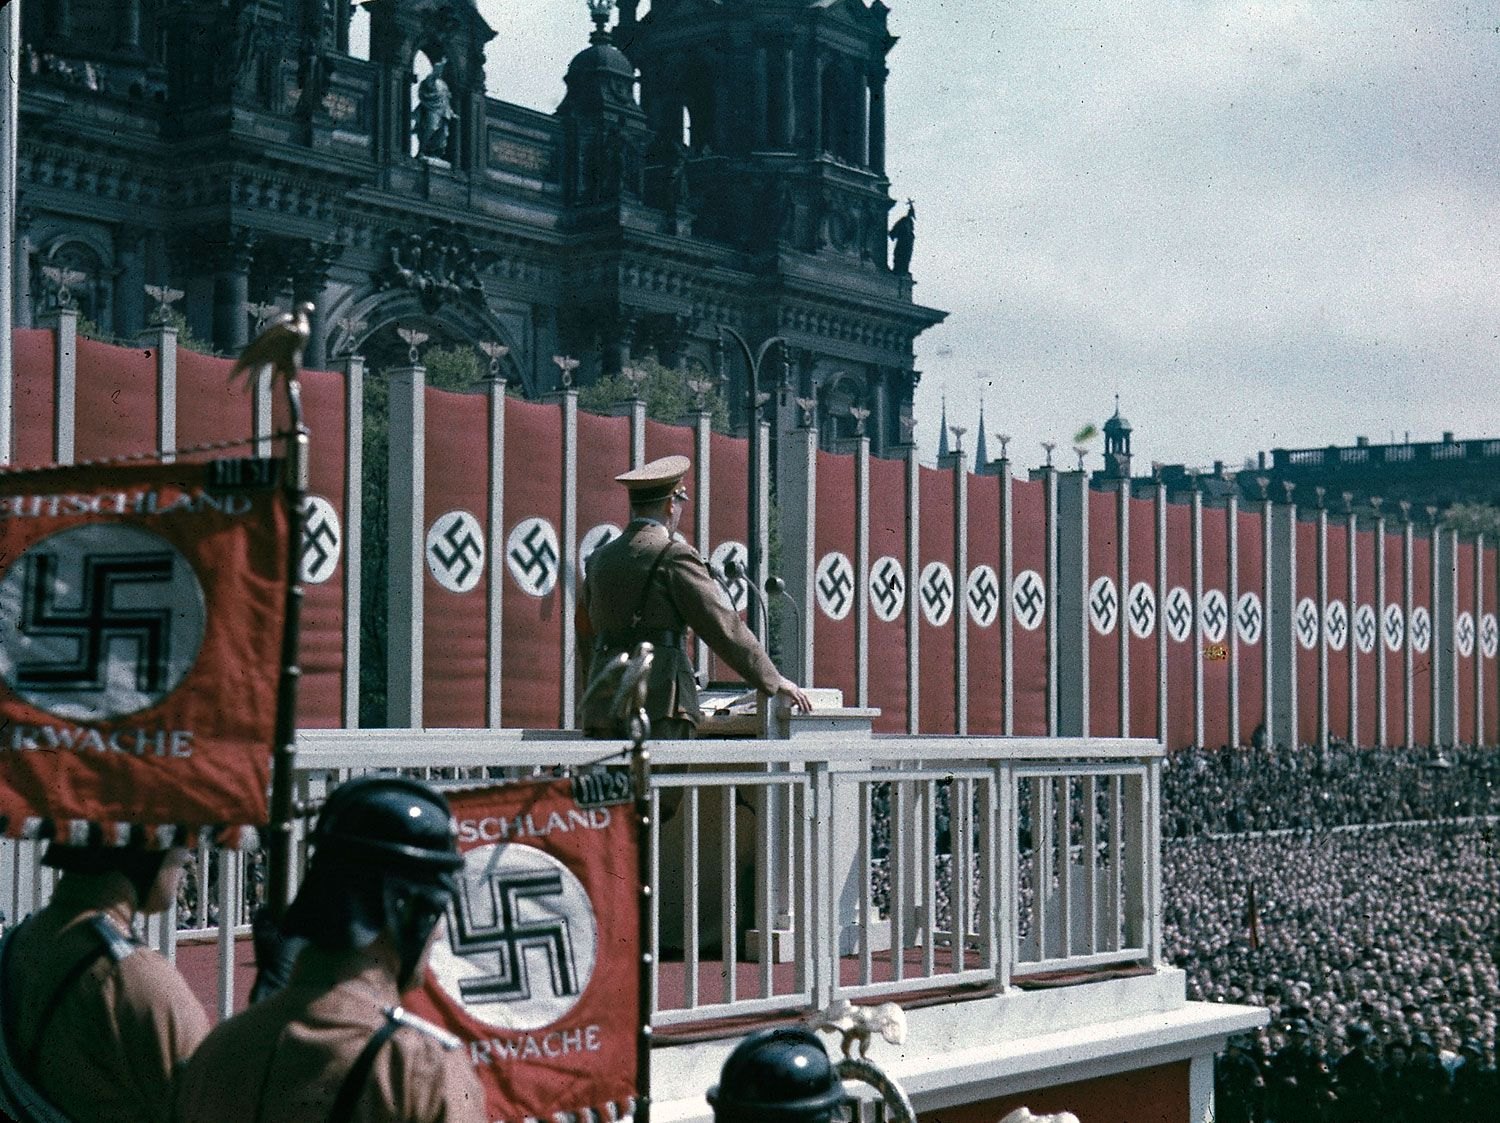 1938: Adolf Hitler speaking at the Lustgarten, Berlin - Found via LIFE.com NOTE: My pinning these does NOT mean I condone Nazism or what the Nazis have done. I am simply showing them due to their value as historical artifacts.